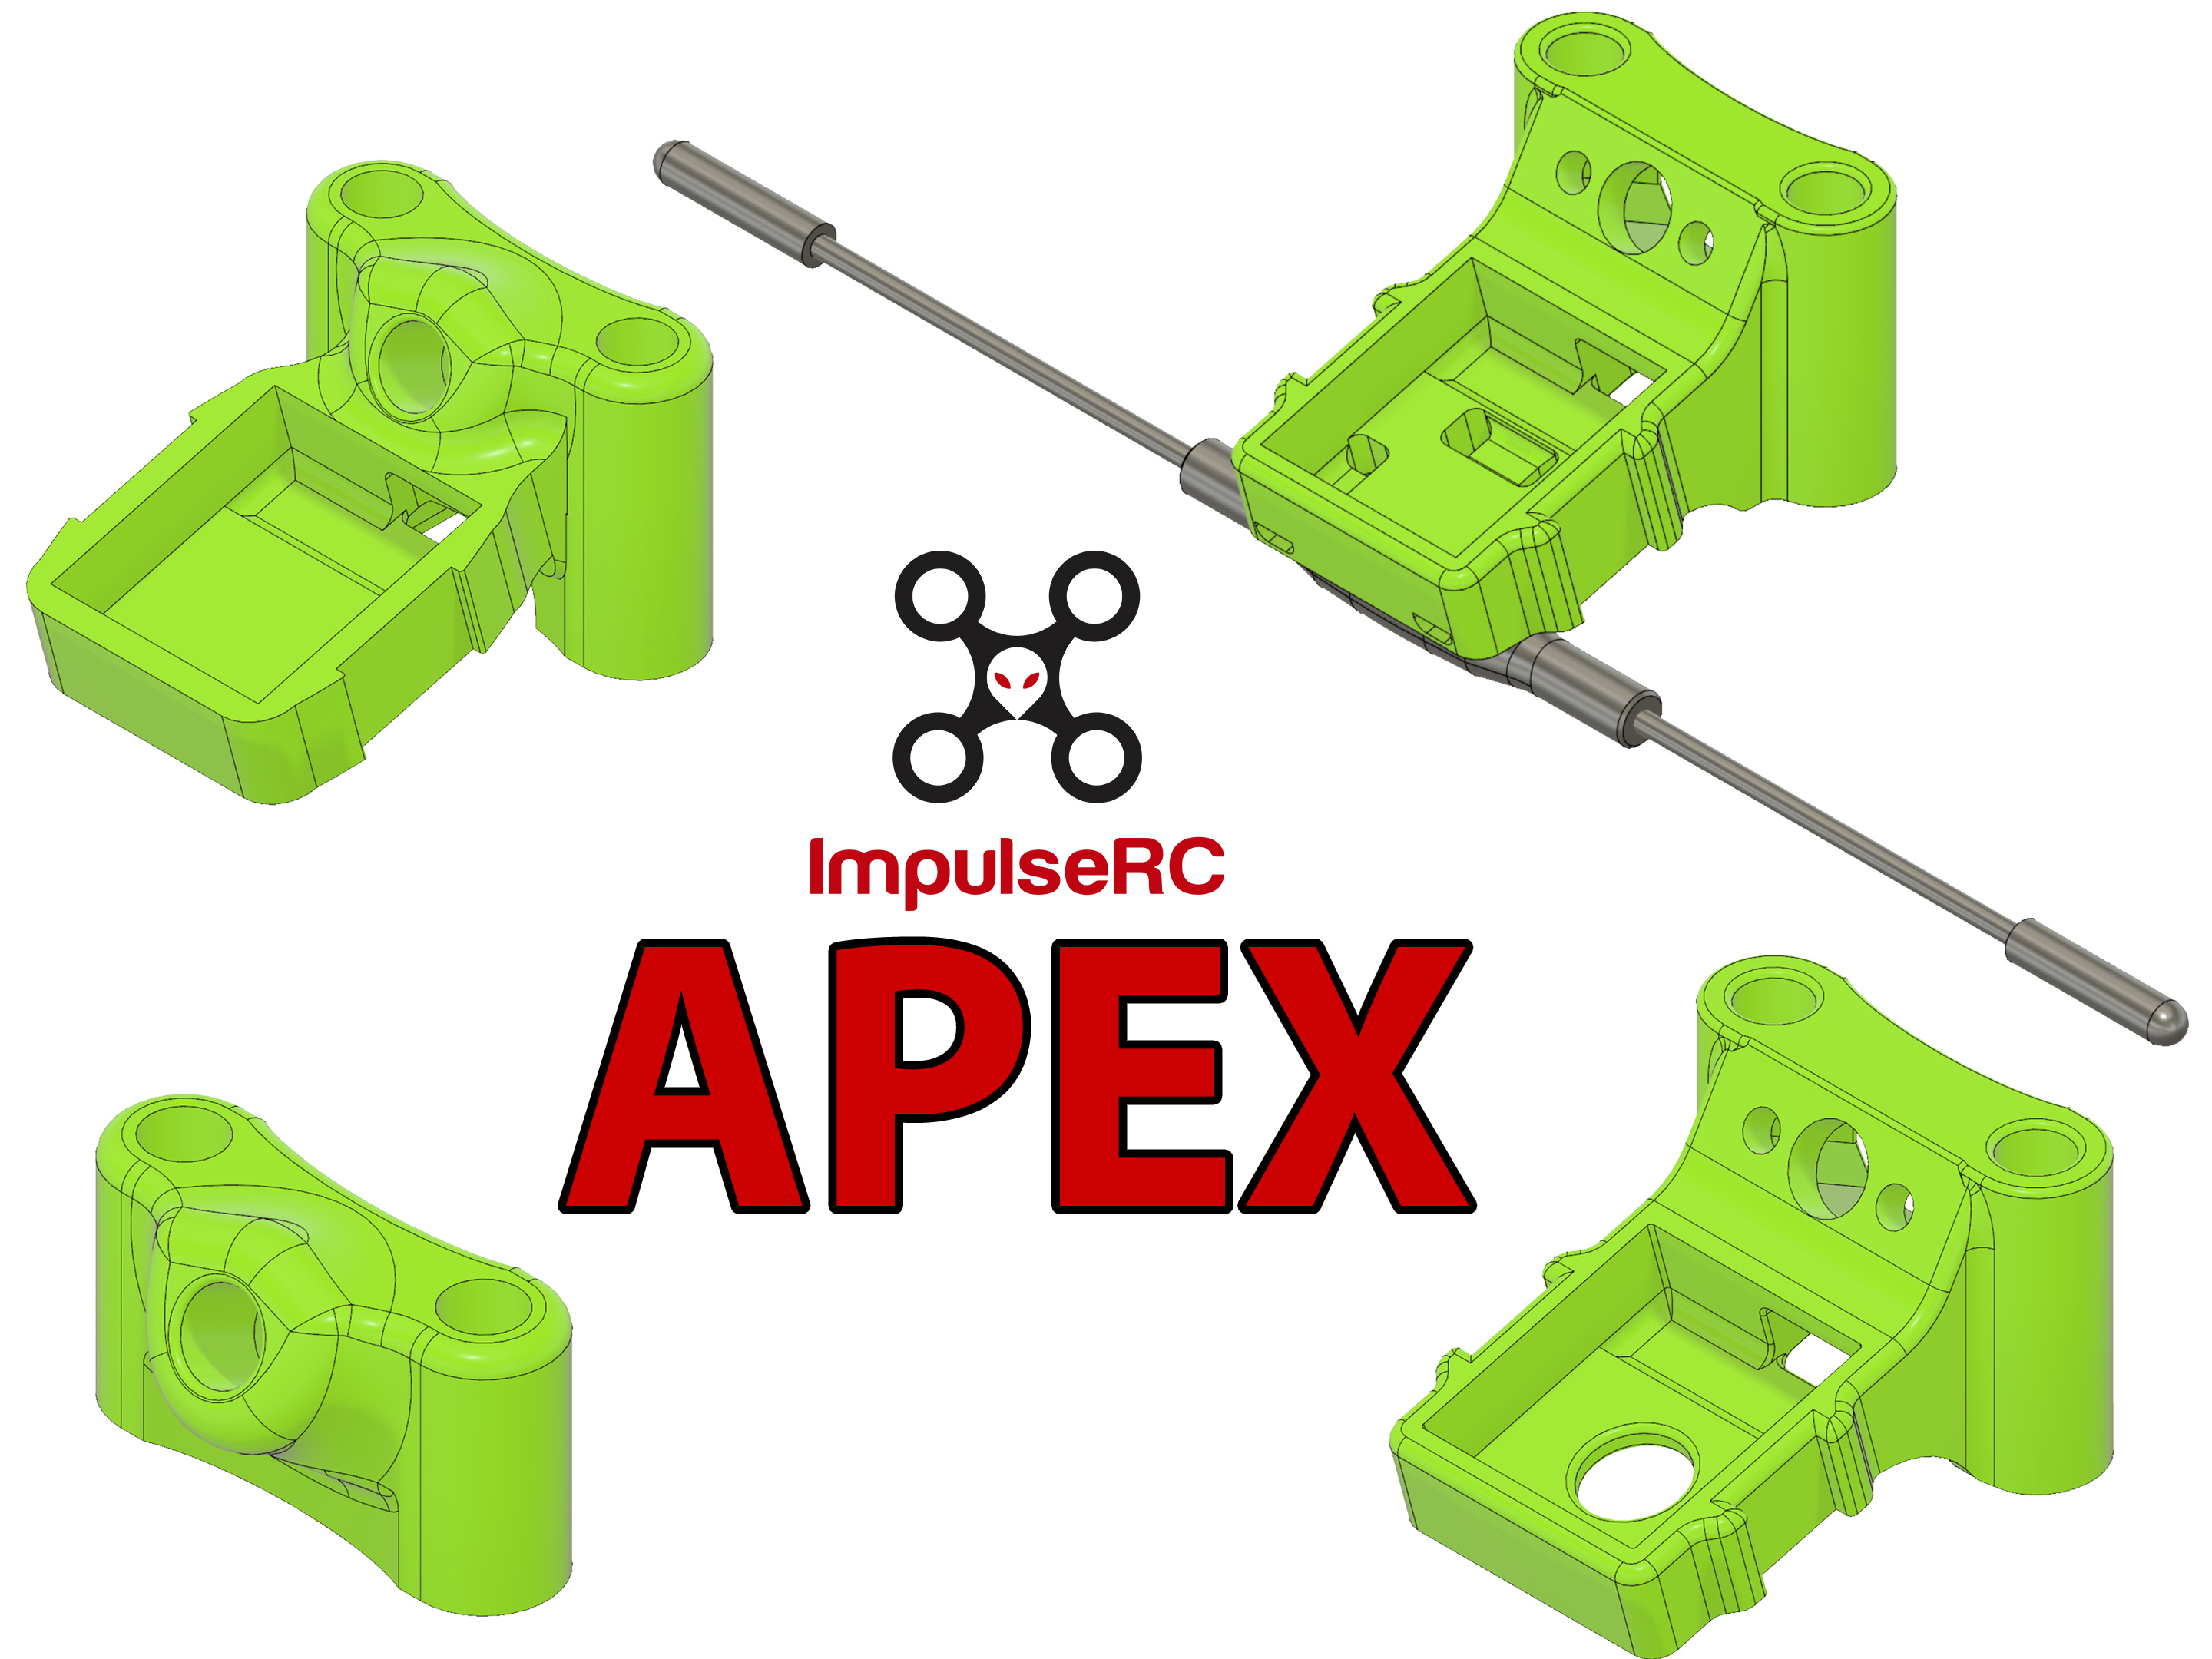 ImpulseRC APEX Antenna Mount + GPS (M8N) + Crossfire